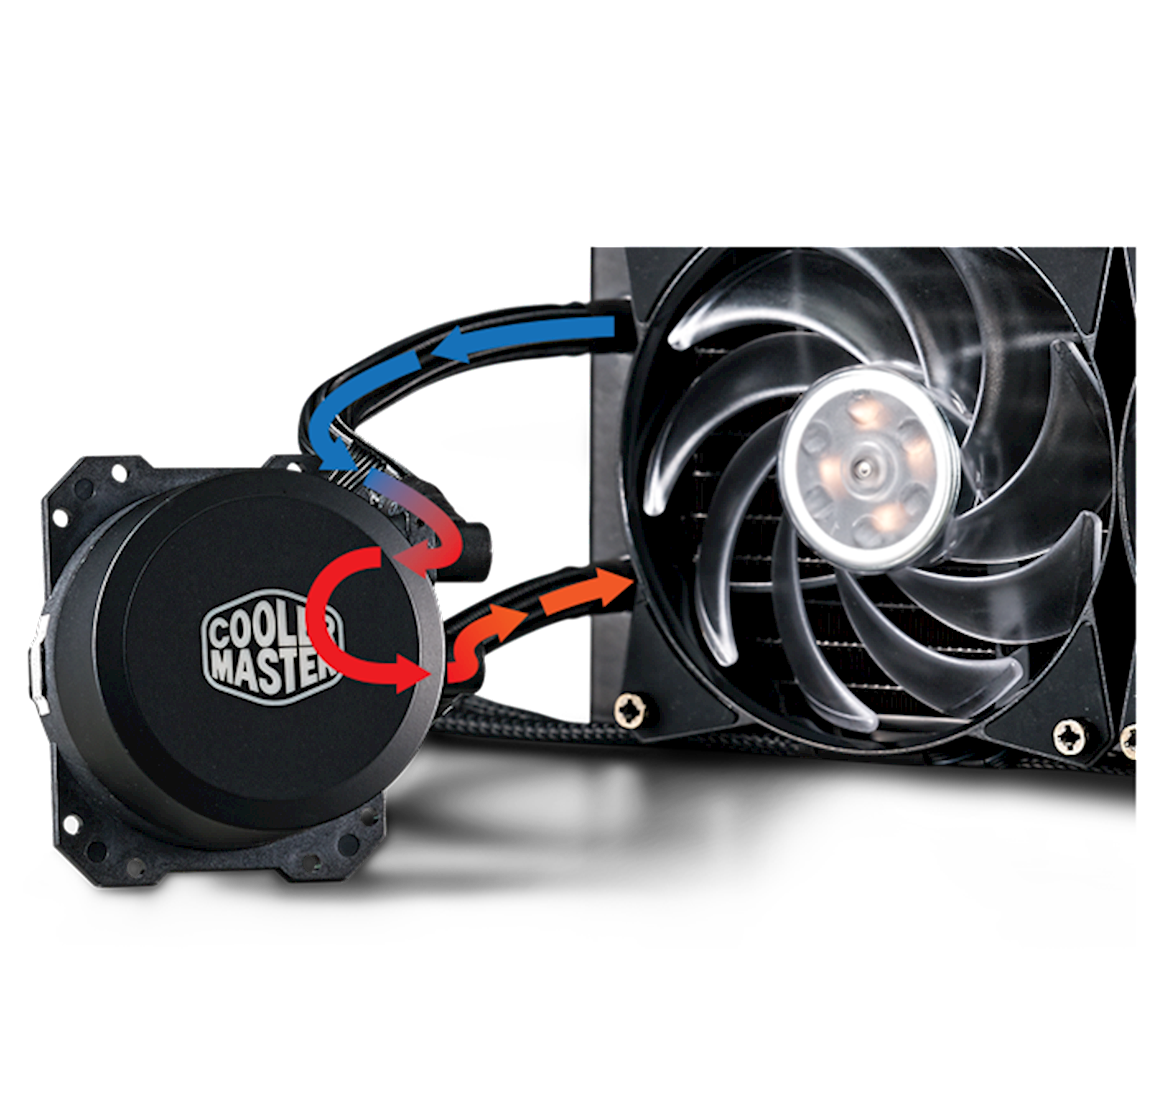 Dual Chamber Pump with RGB